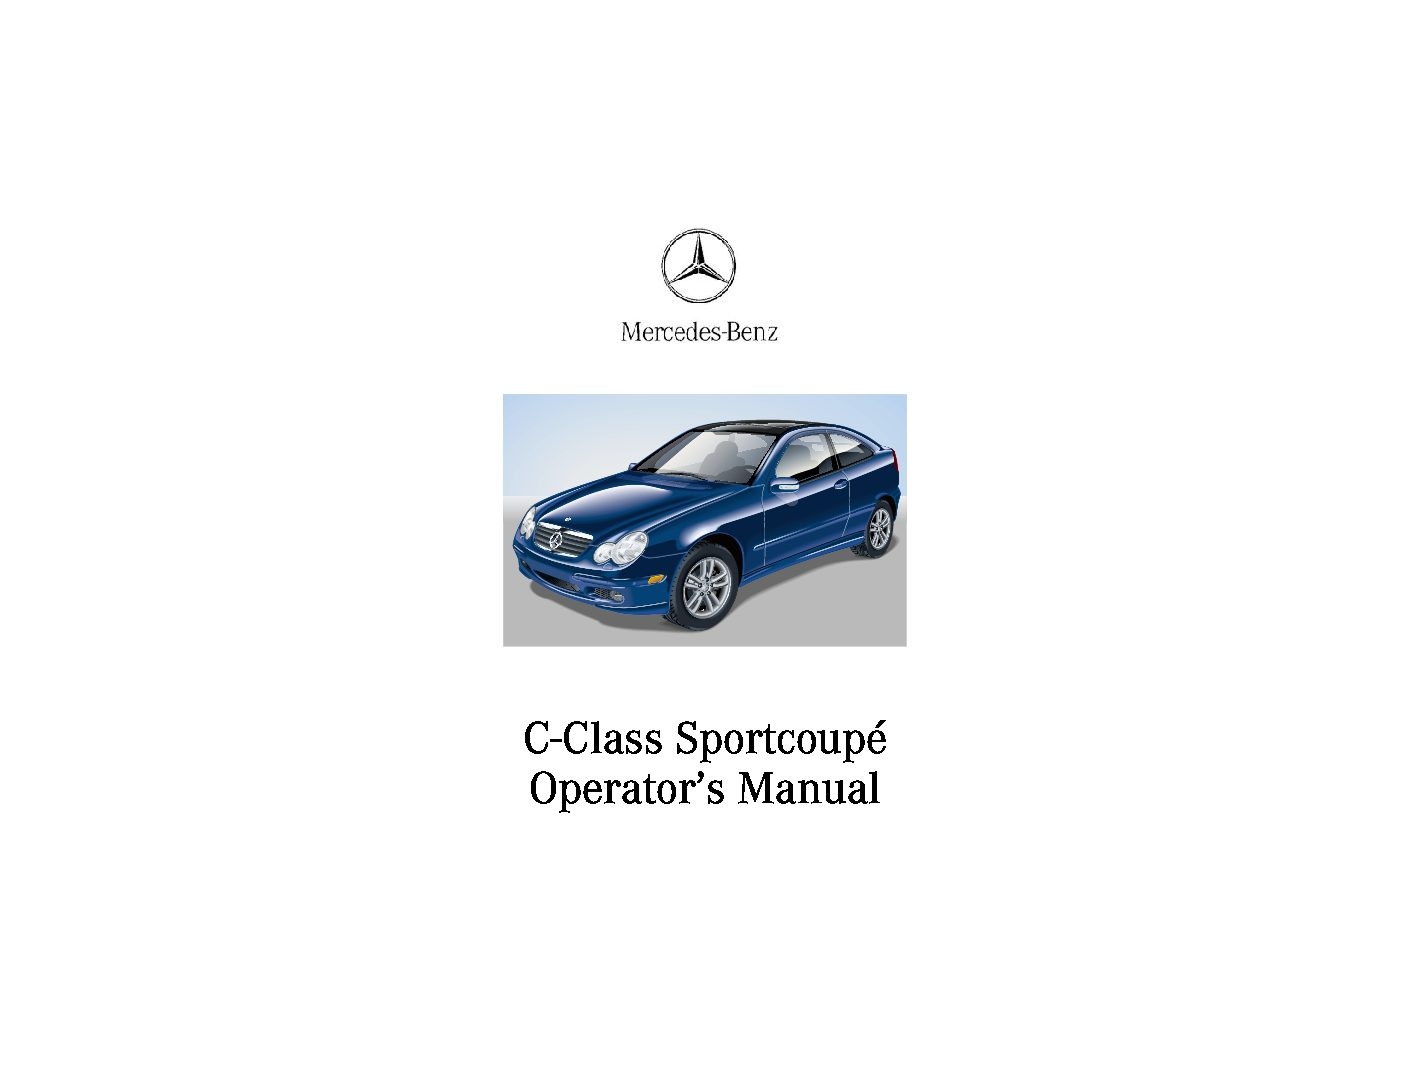 2002 mercedes benz c class coupe owners manual just give me the rh justgivemethedamnmanual com mercedes c180 coupe owners manual mercedes c180 coupe owners manual